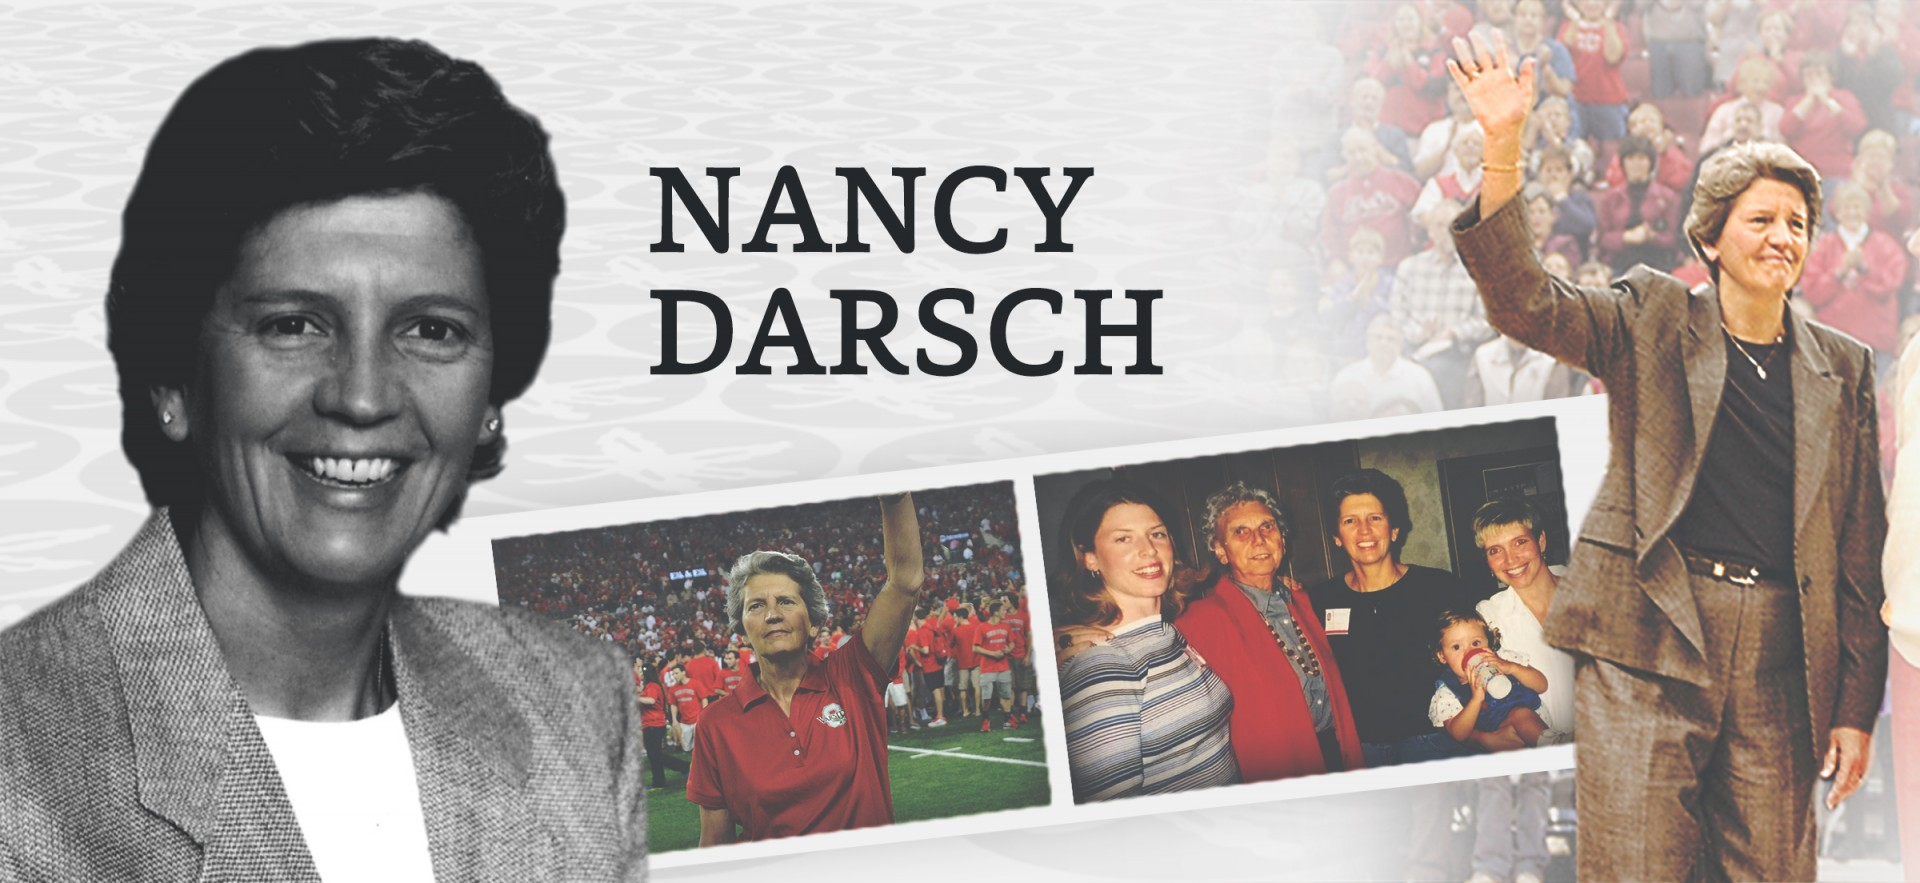 Nancy Darsch